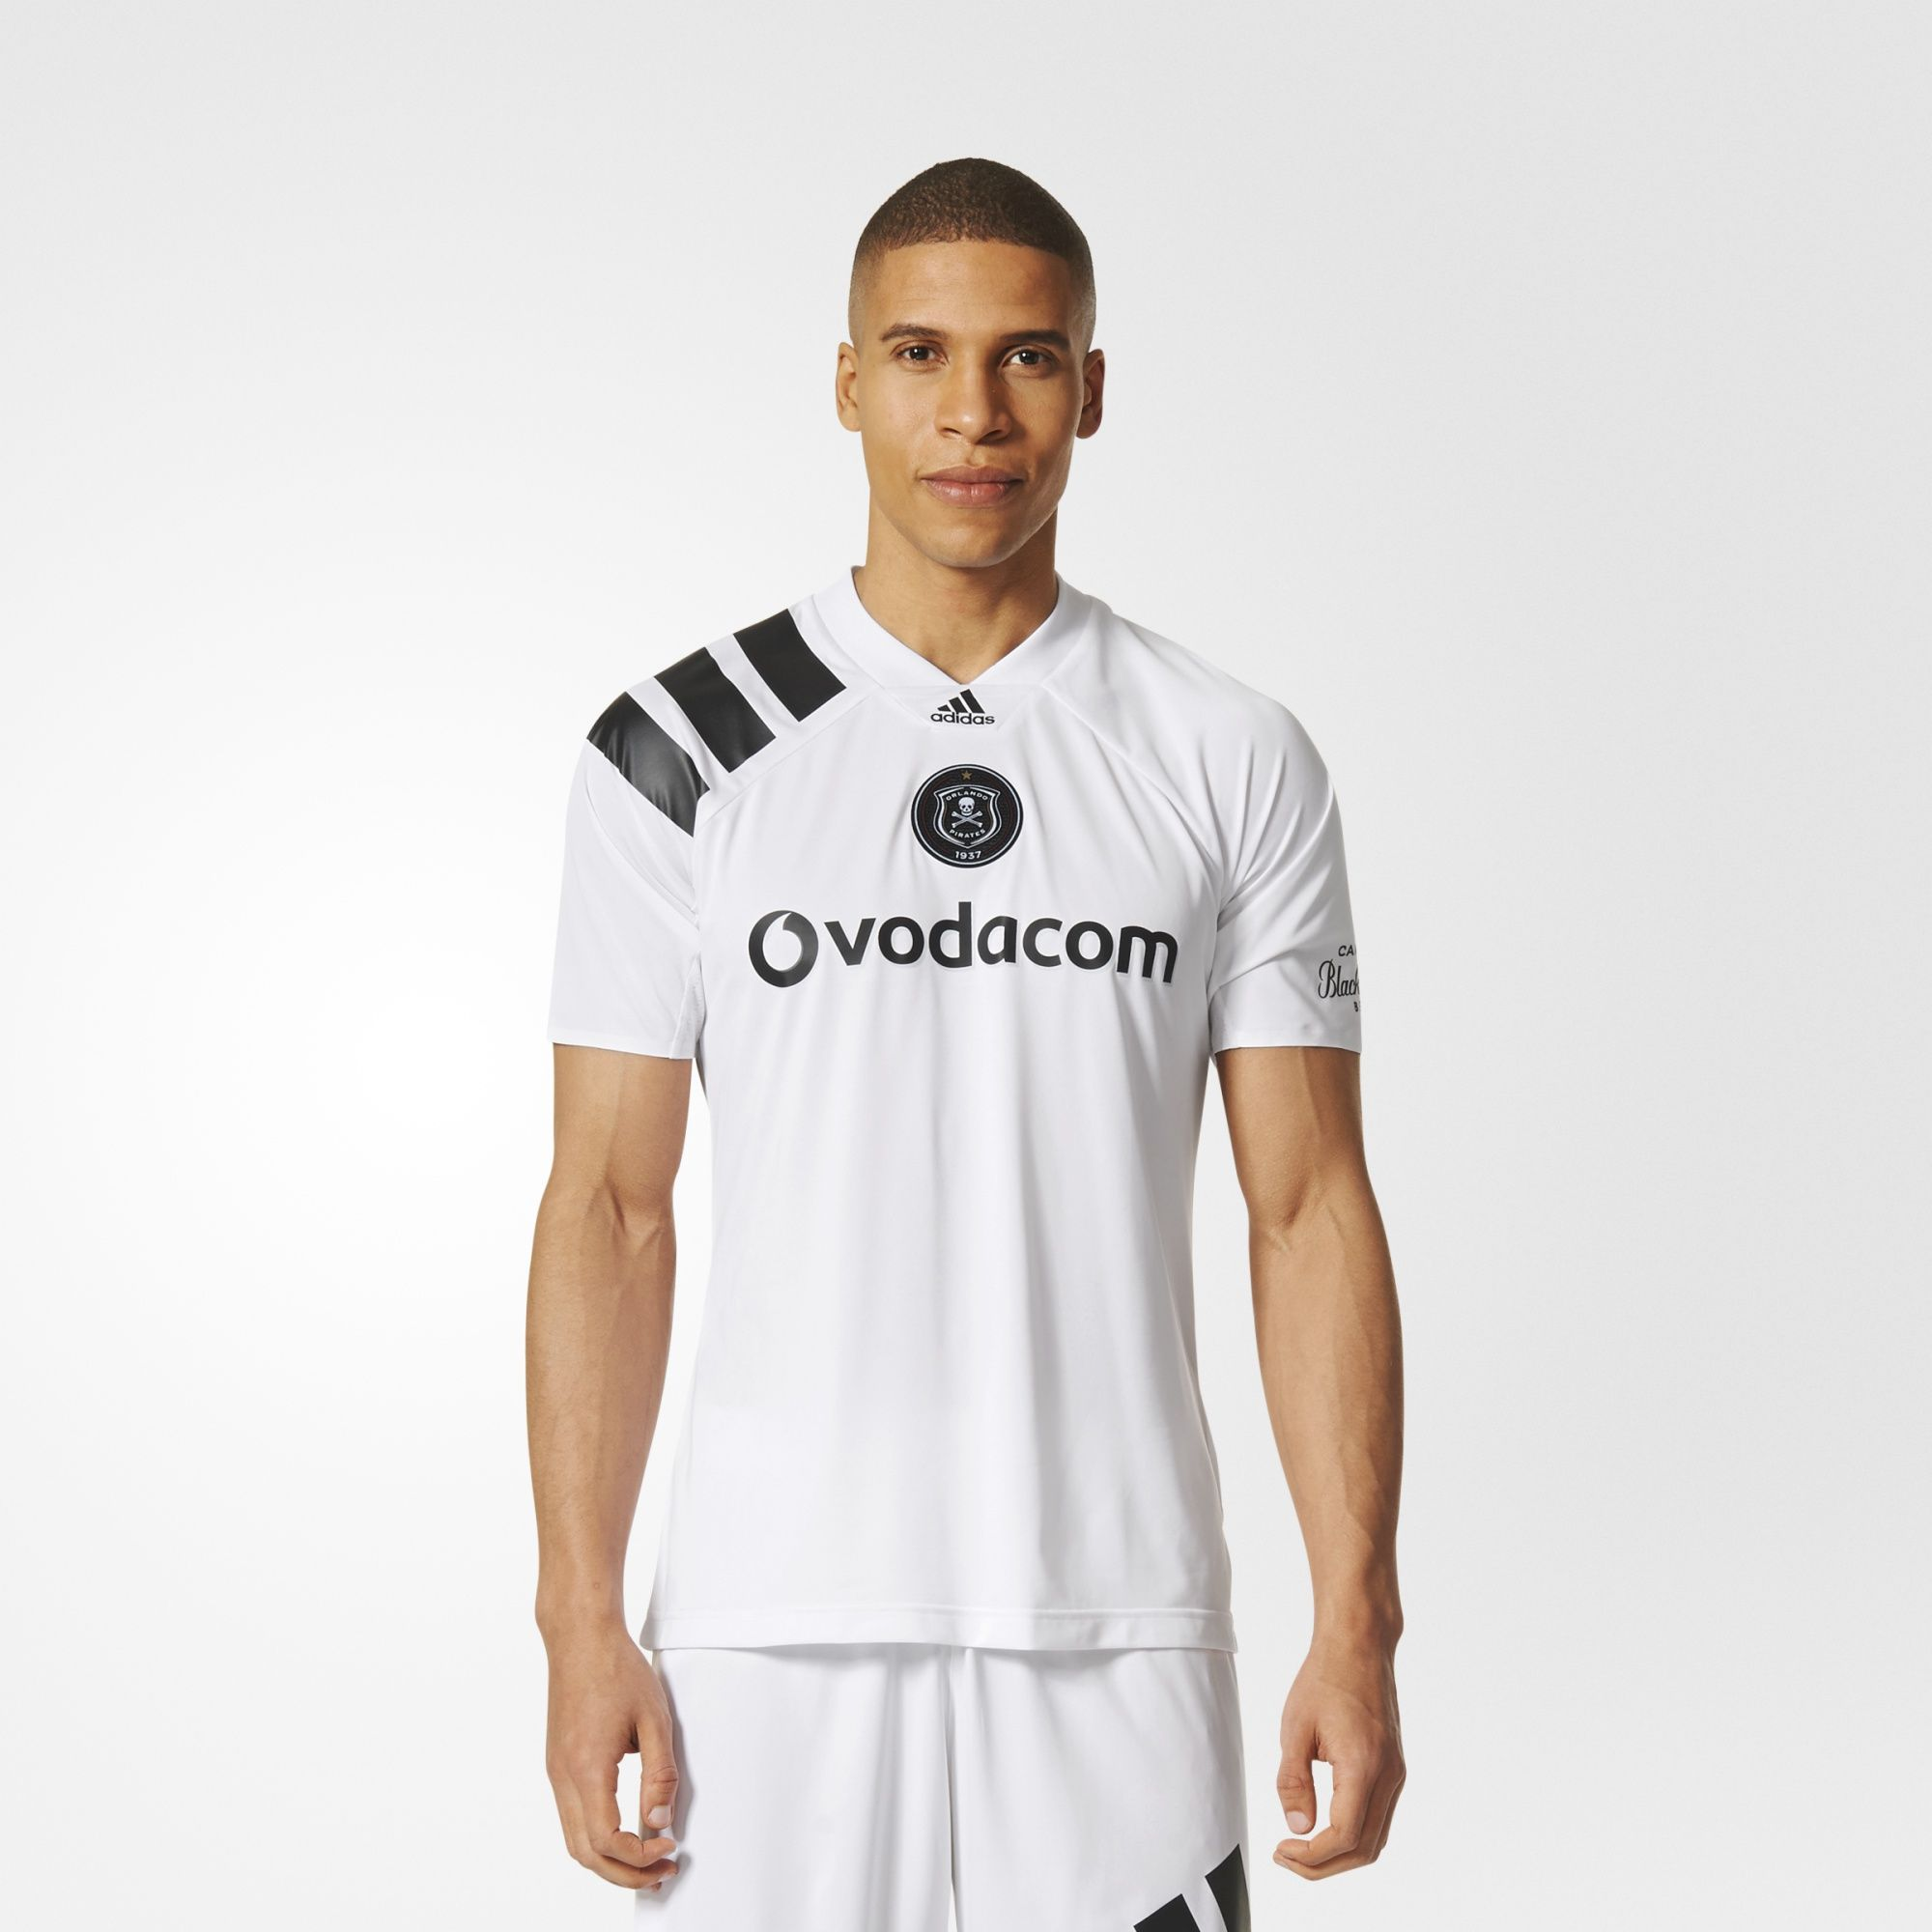 http://www.footballshirtculture.com/images/stories/orlando-pirates-2017-2018-adidas-away-kit/orlando_pirates_17_18_adidas_away_kit_a.jpg